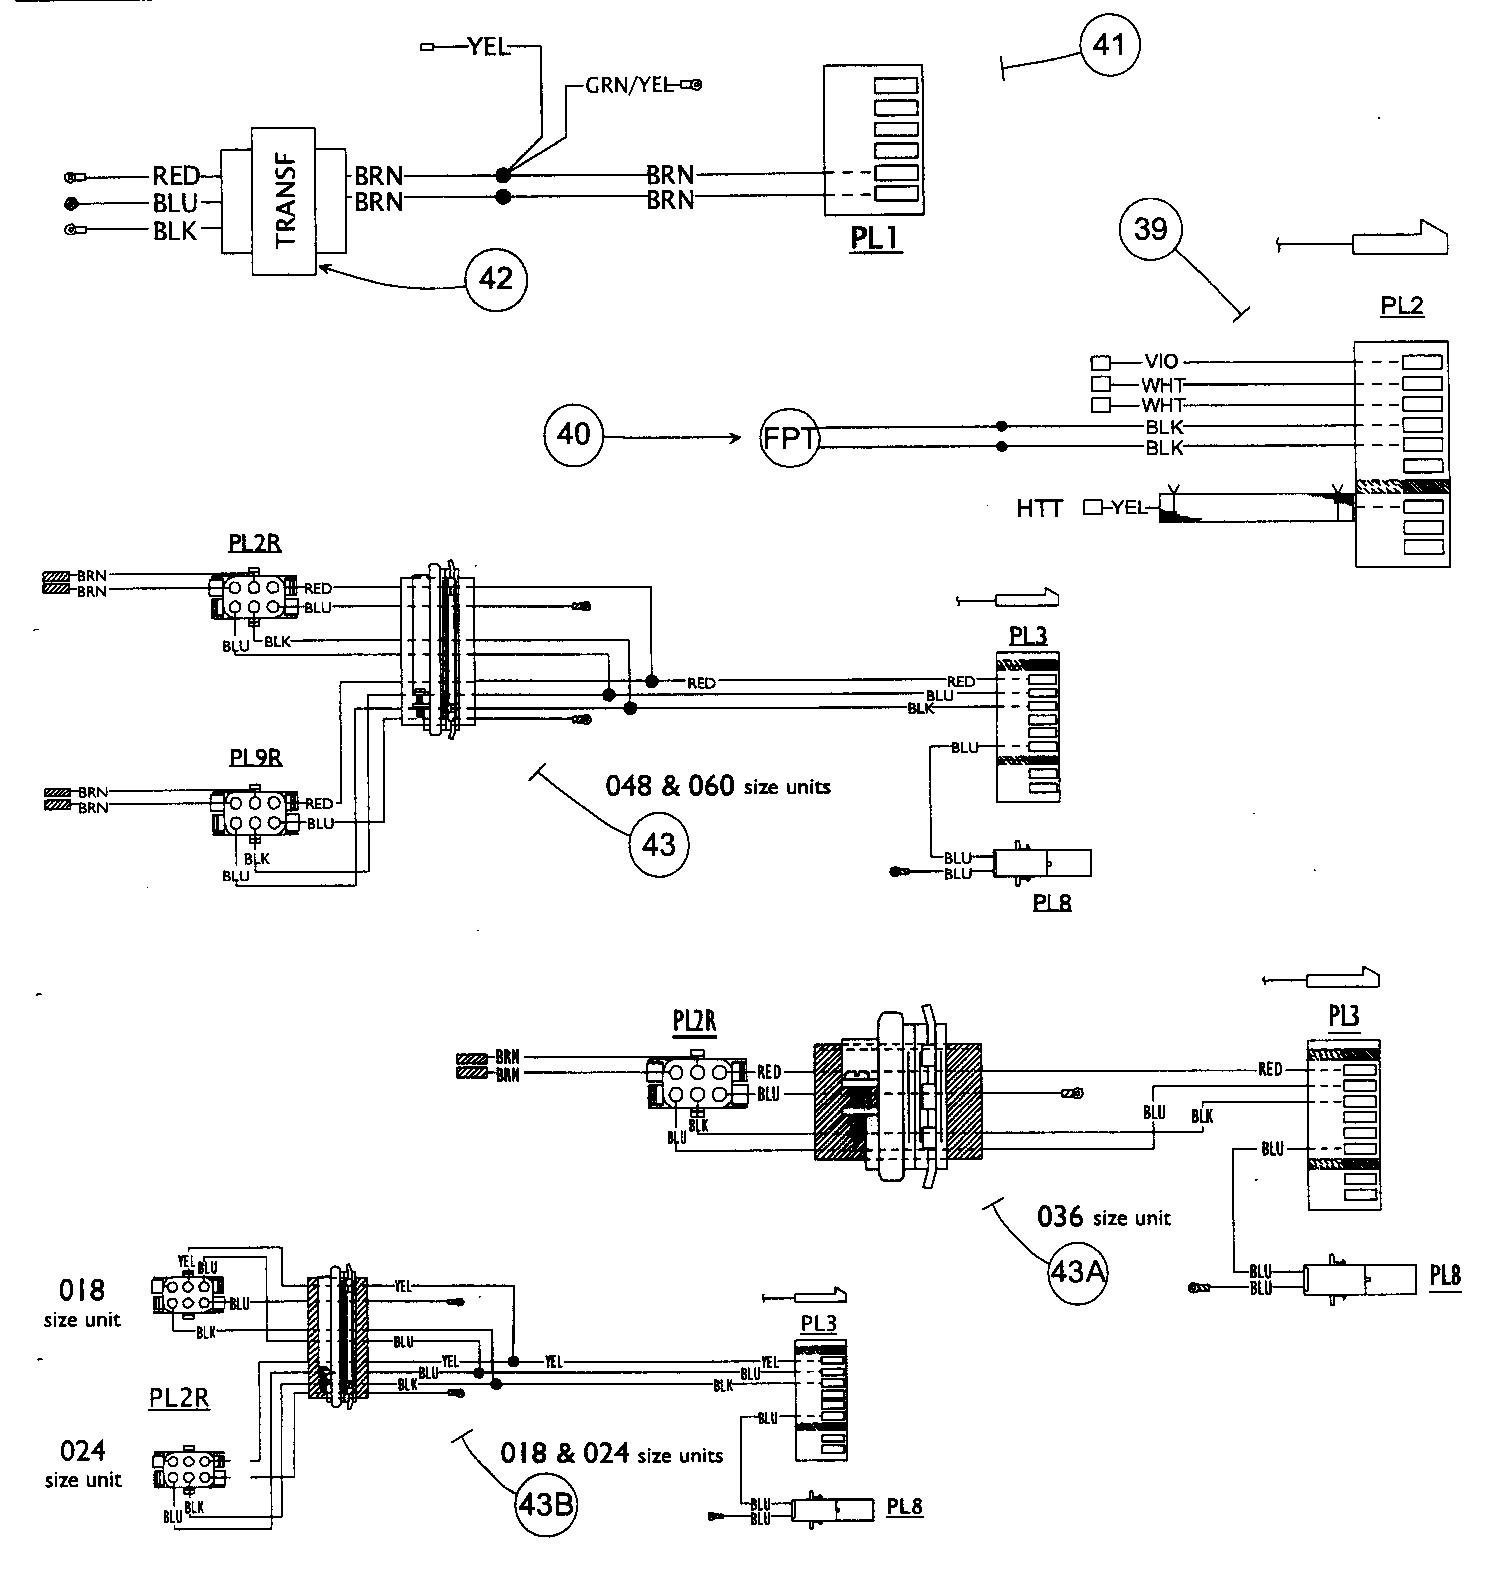 Carrier Ac Unit Wiring Diagram Gallery Sample For A Collection Air Conditioning New